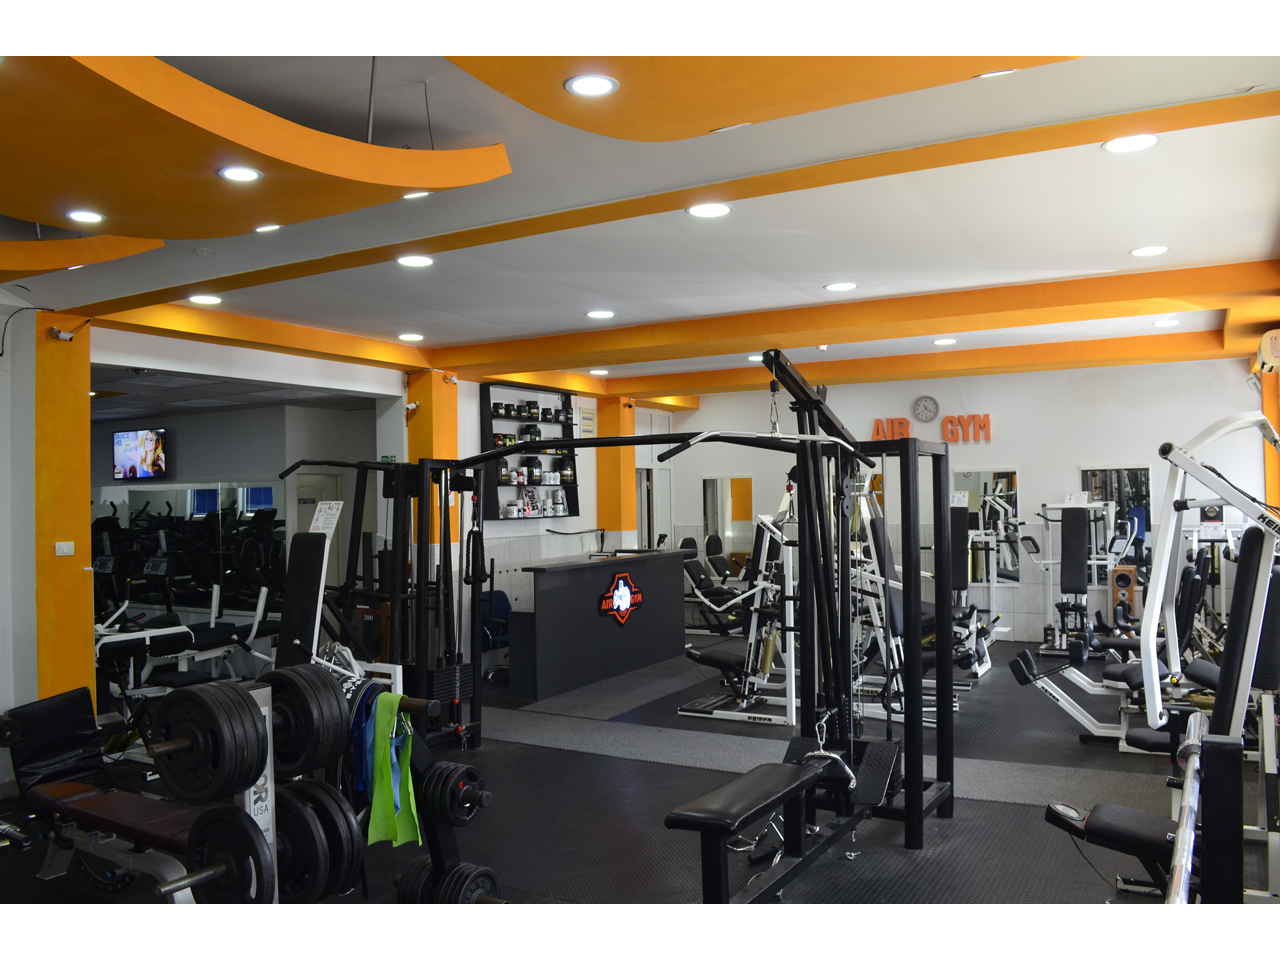 AIR GYM Gyms, fitness Beograd